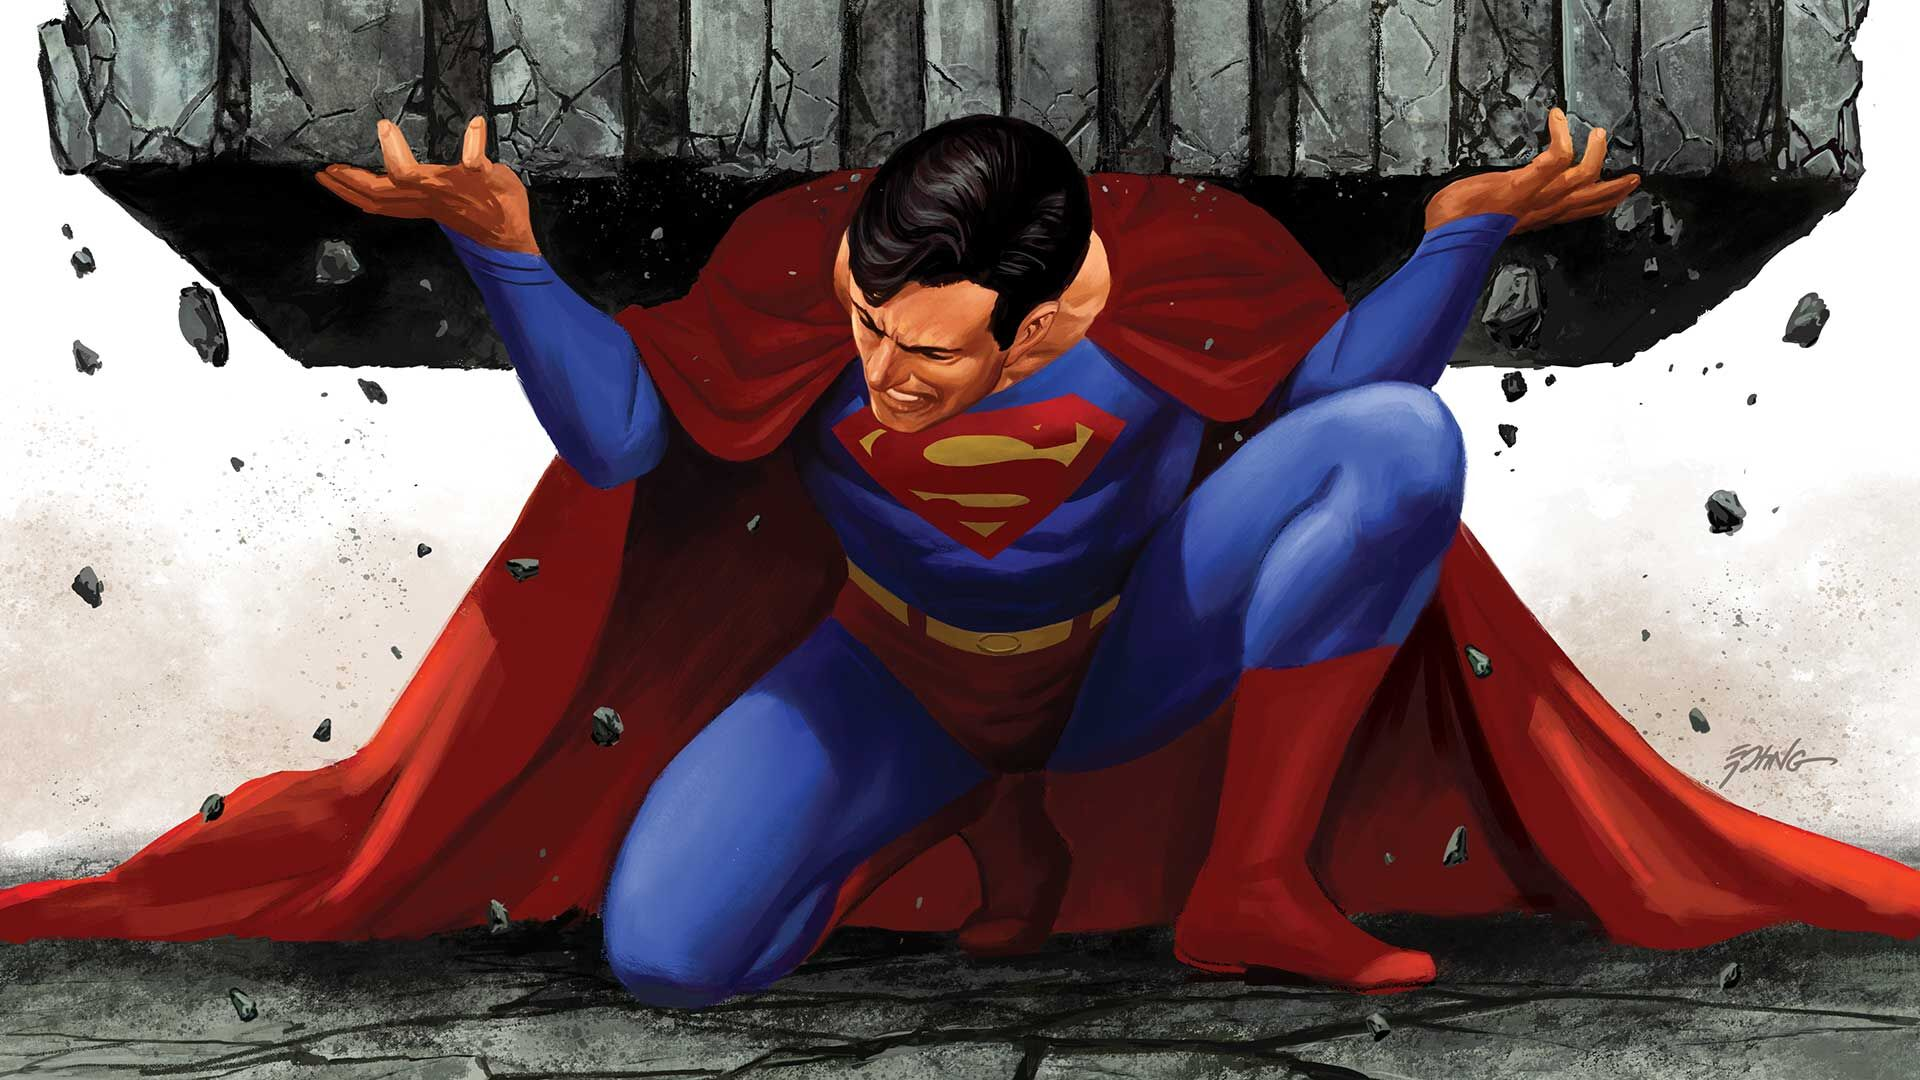 Lois and Superman uncover Spyral's secrets in Action Comics No. 1011